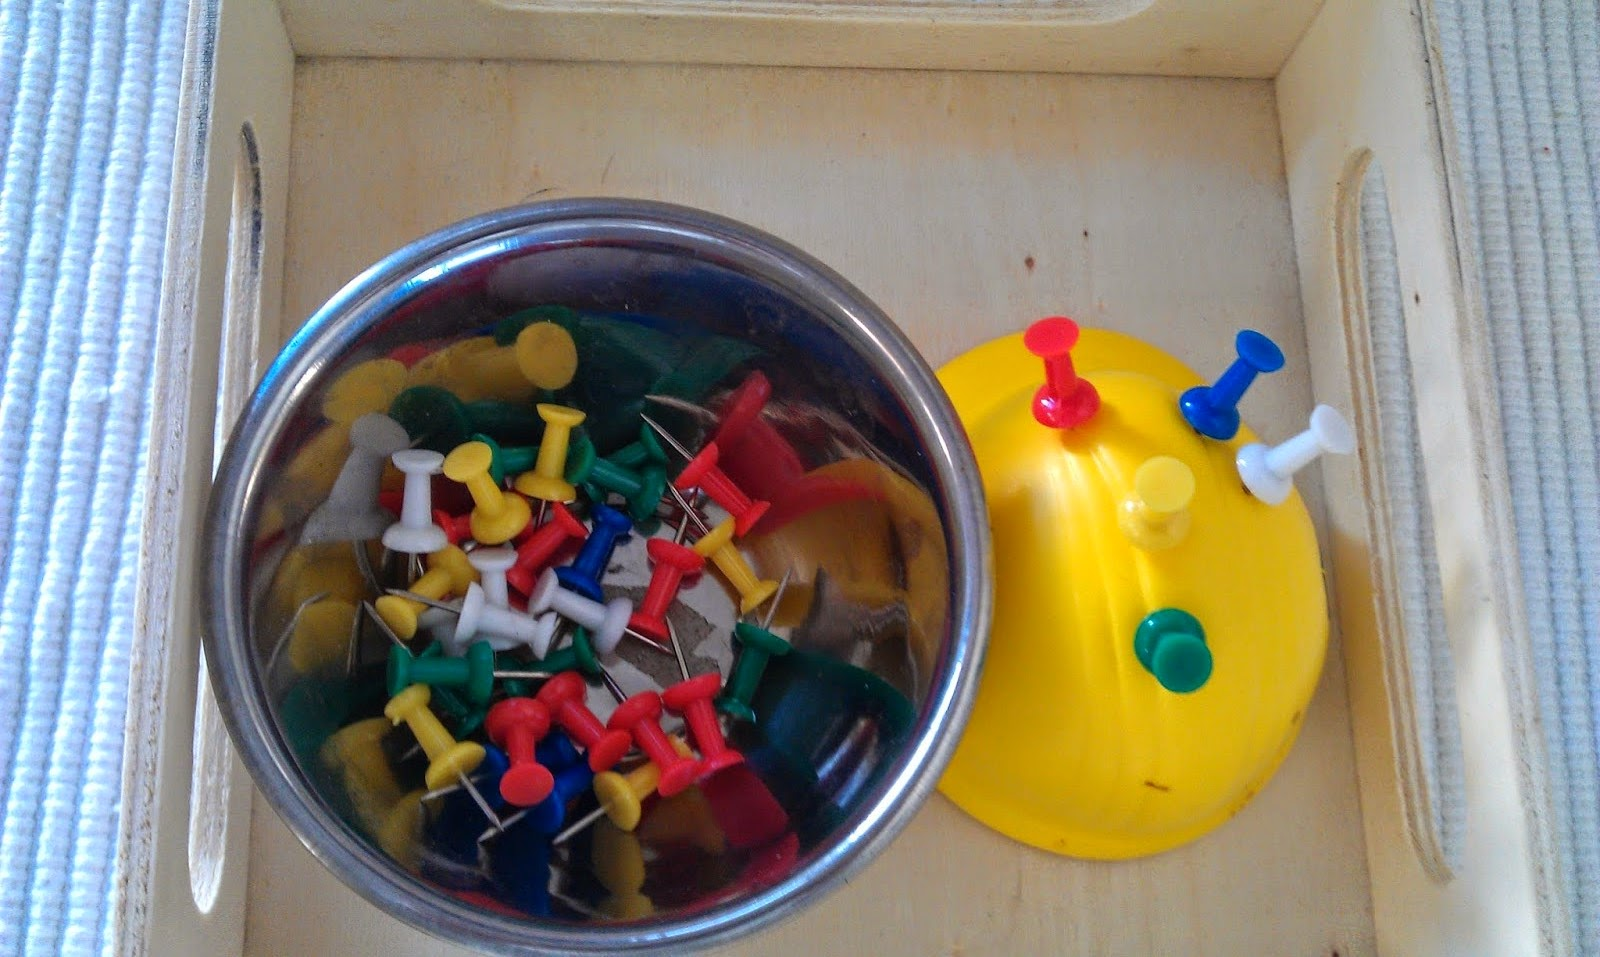 20 Diy Montessori Inspired Activities For 2 And 3 Year